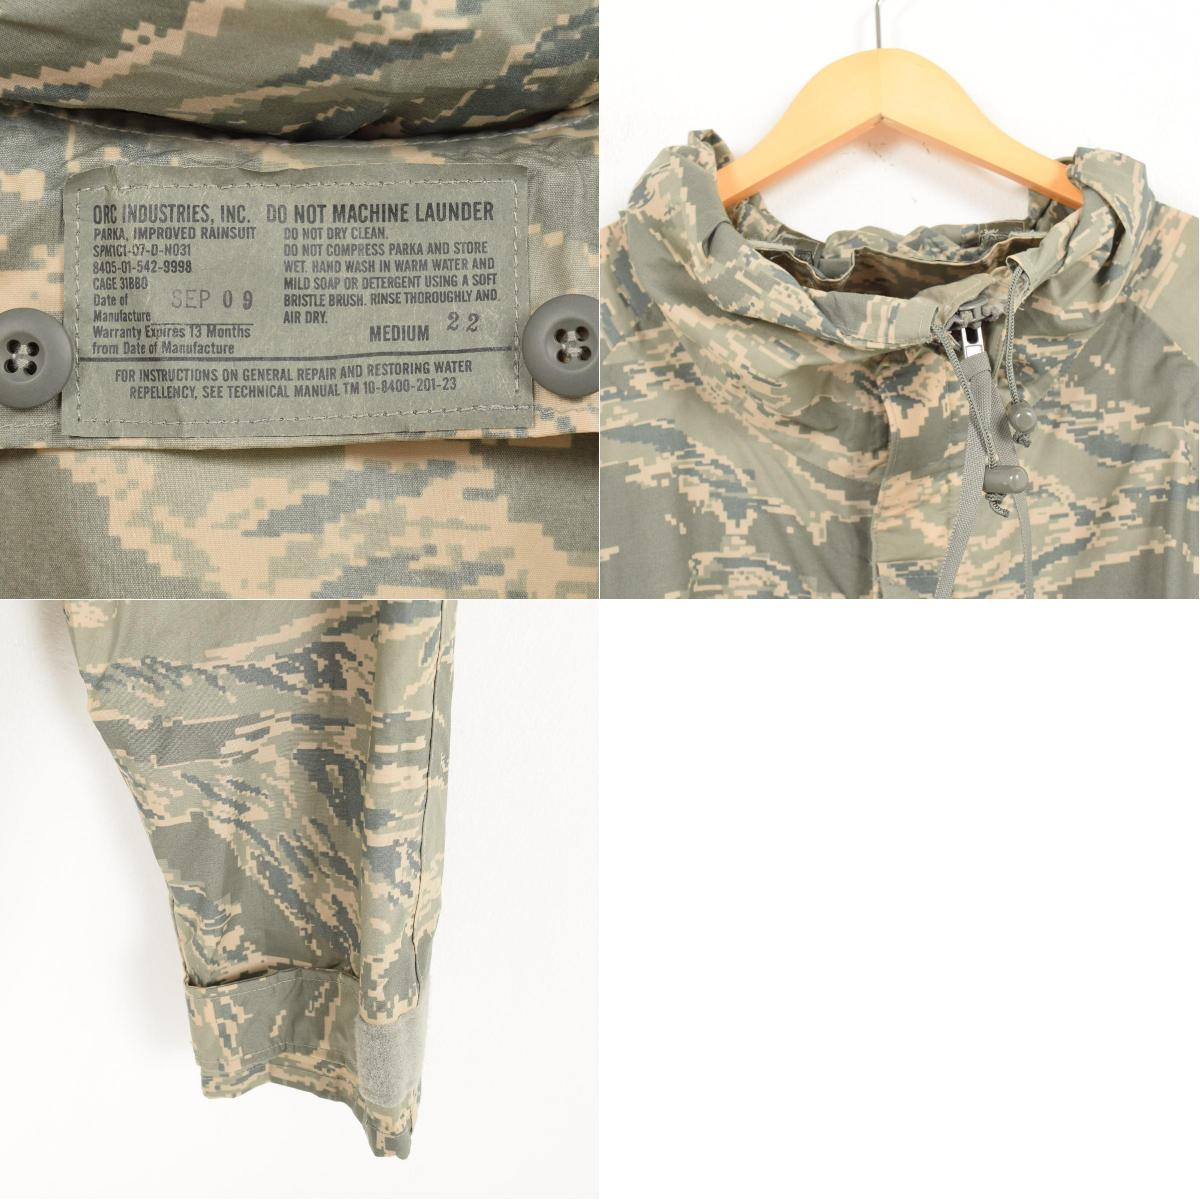 Digital duck camouflage pattern GORE-TEX Gore-Tex military rain parka men M  ORC INDUSTRIES INC /wah1566 for 01 years made in delivery of goods U S